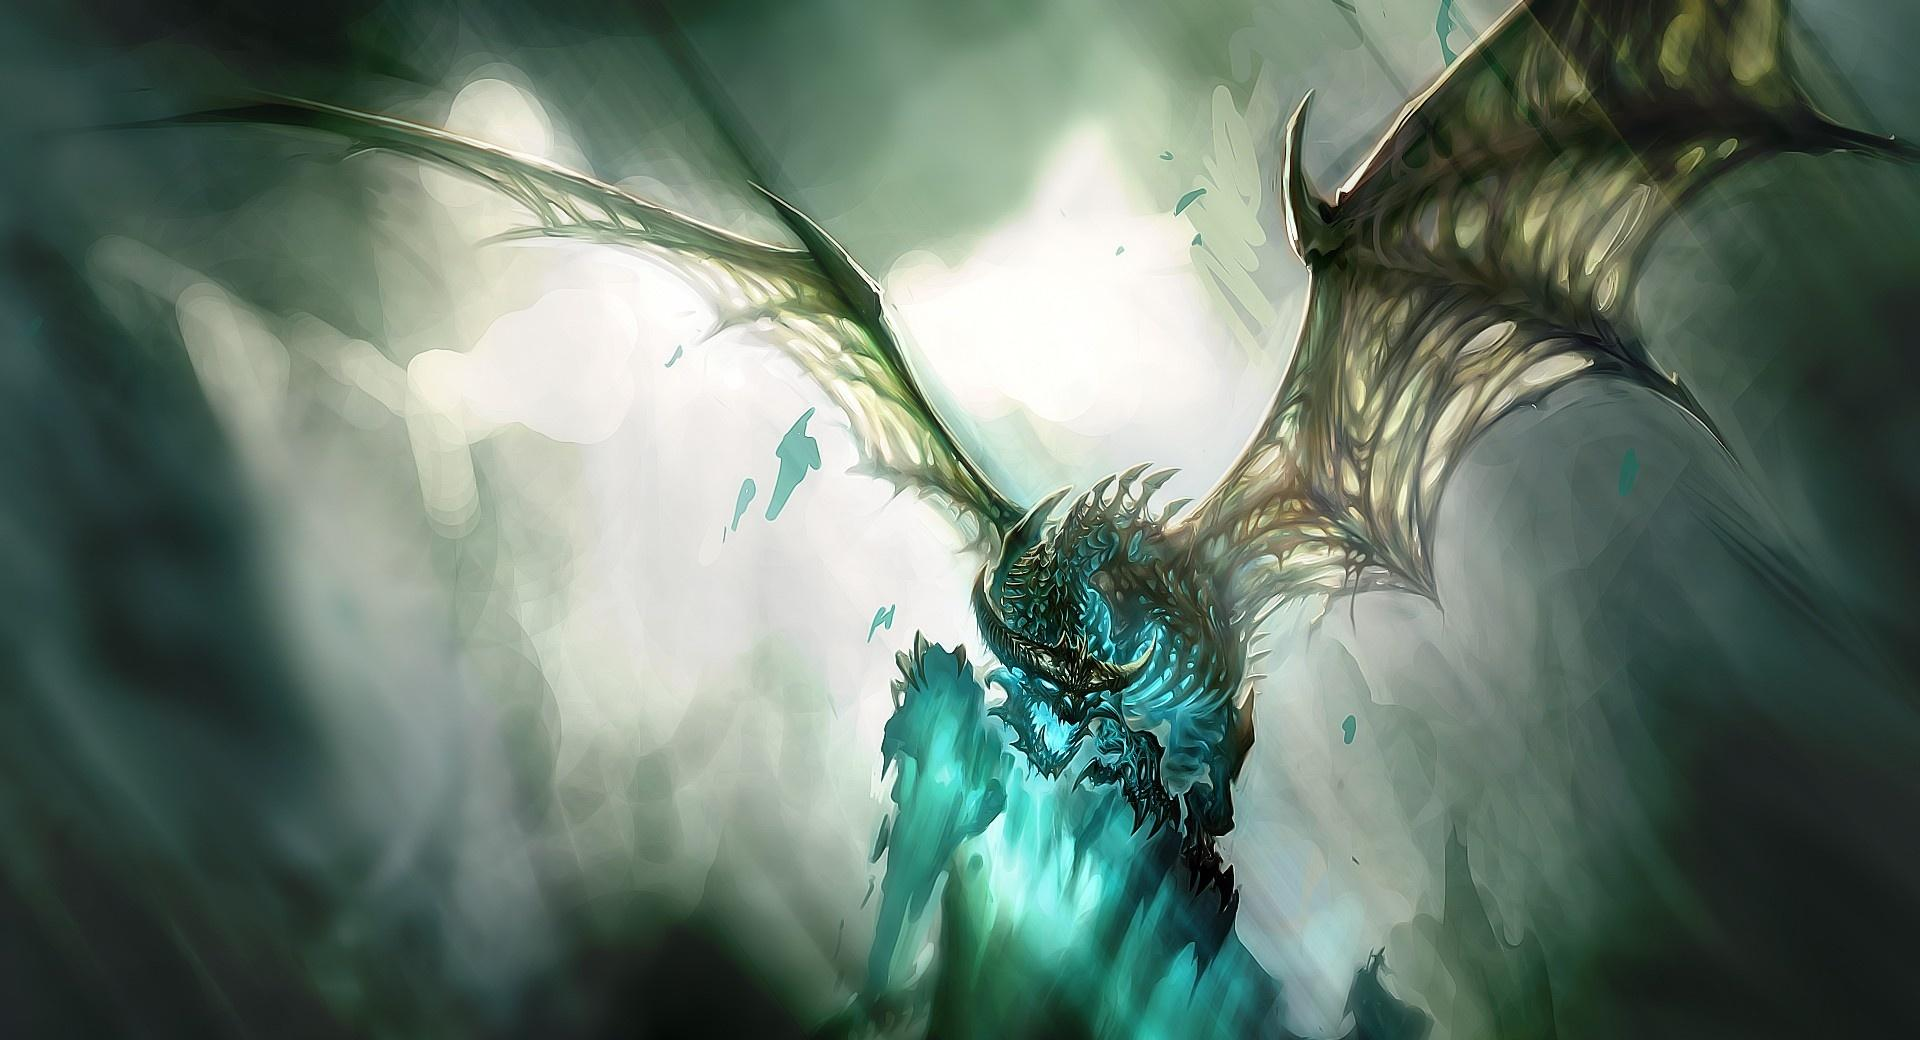 World Of Warcraft Dragon wallpapers HD quality